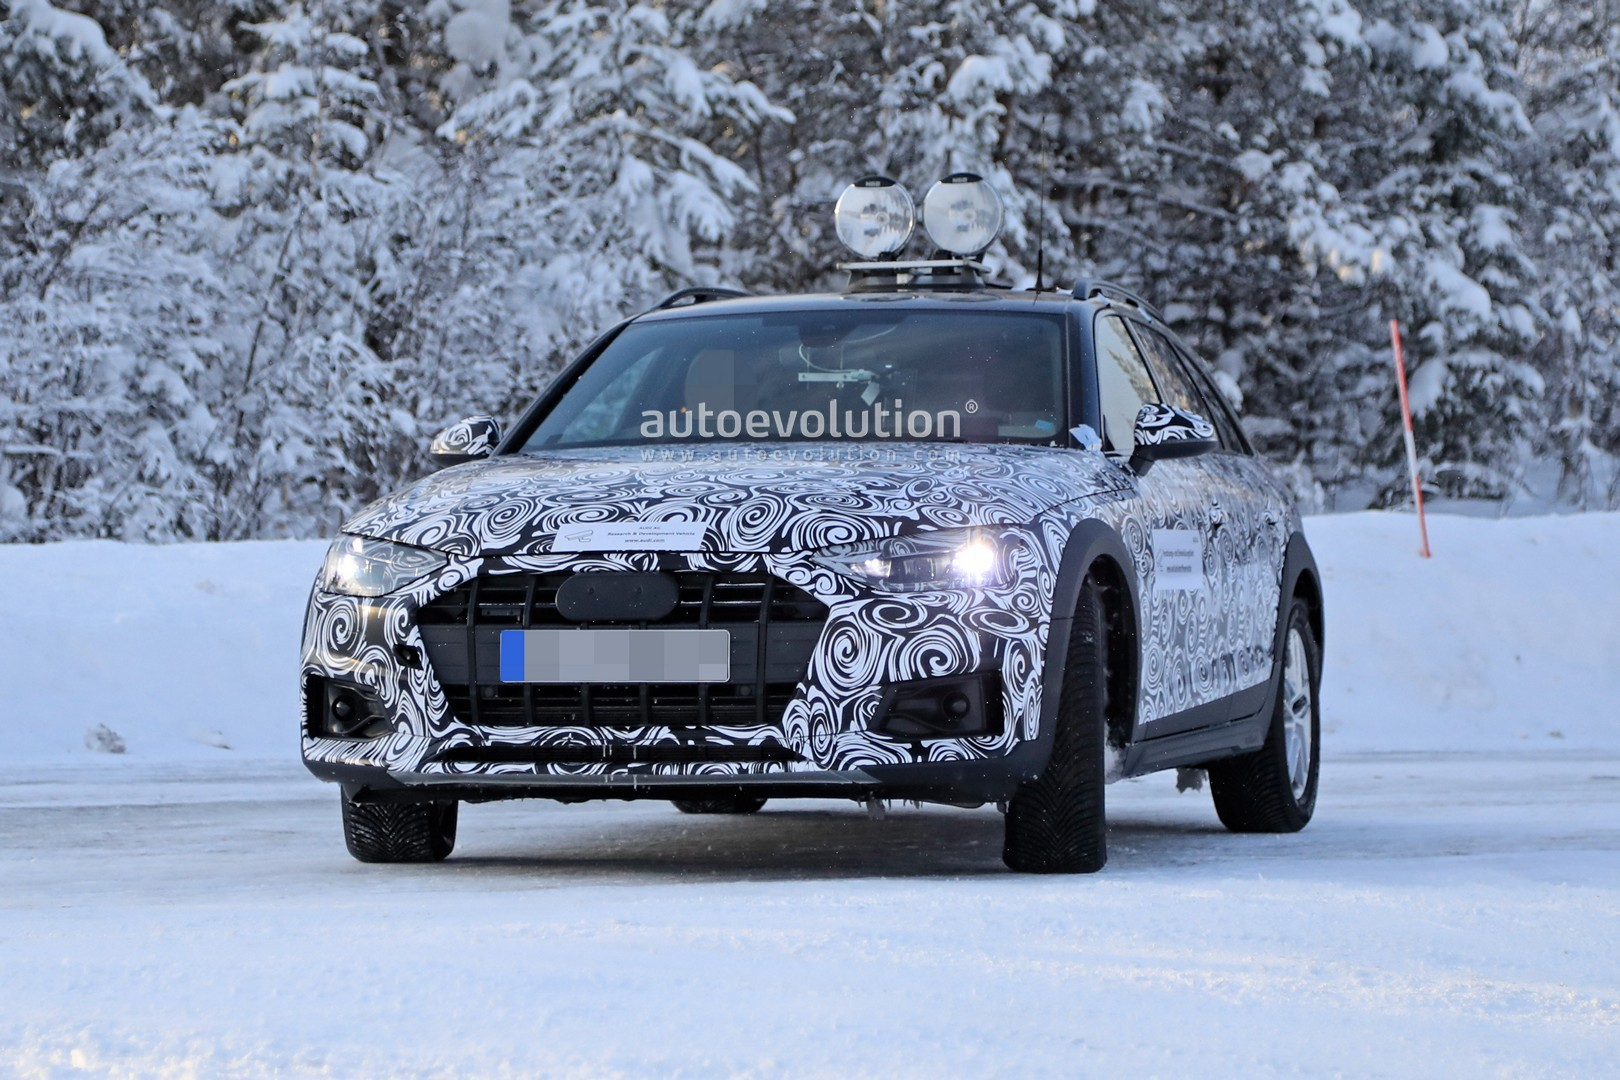 winter spyshots audi a4 allroad facelift getting ready for 2020 adventure autoevolution. Black Bedroom Furniture Sets. Home Design Ideas